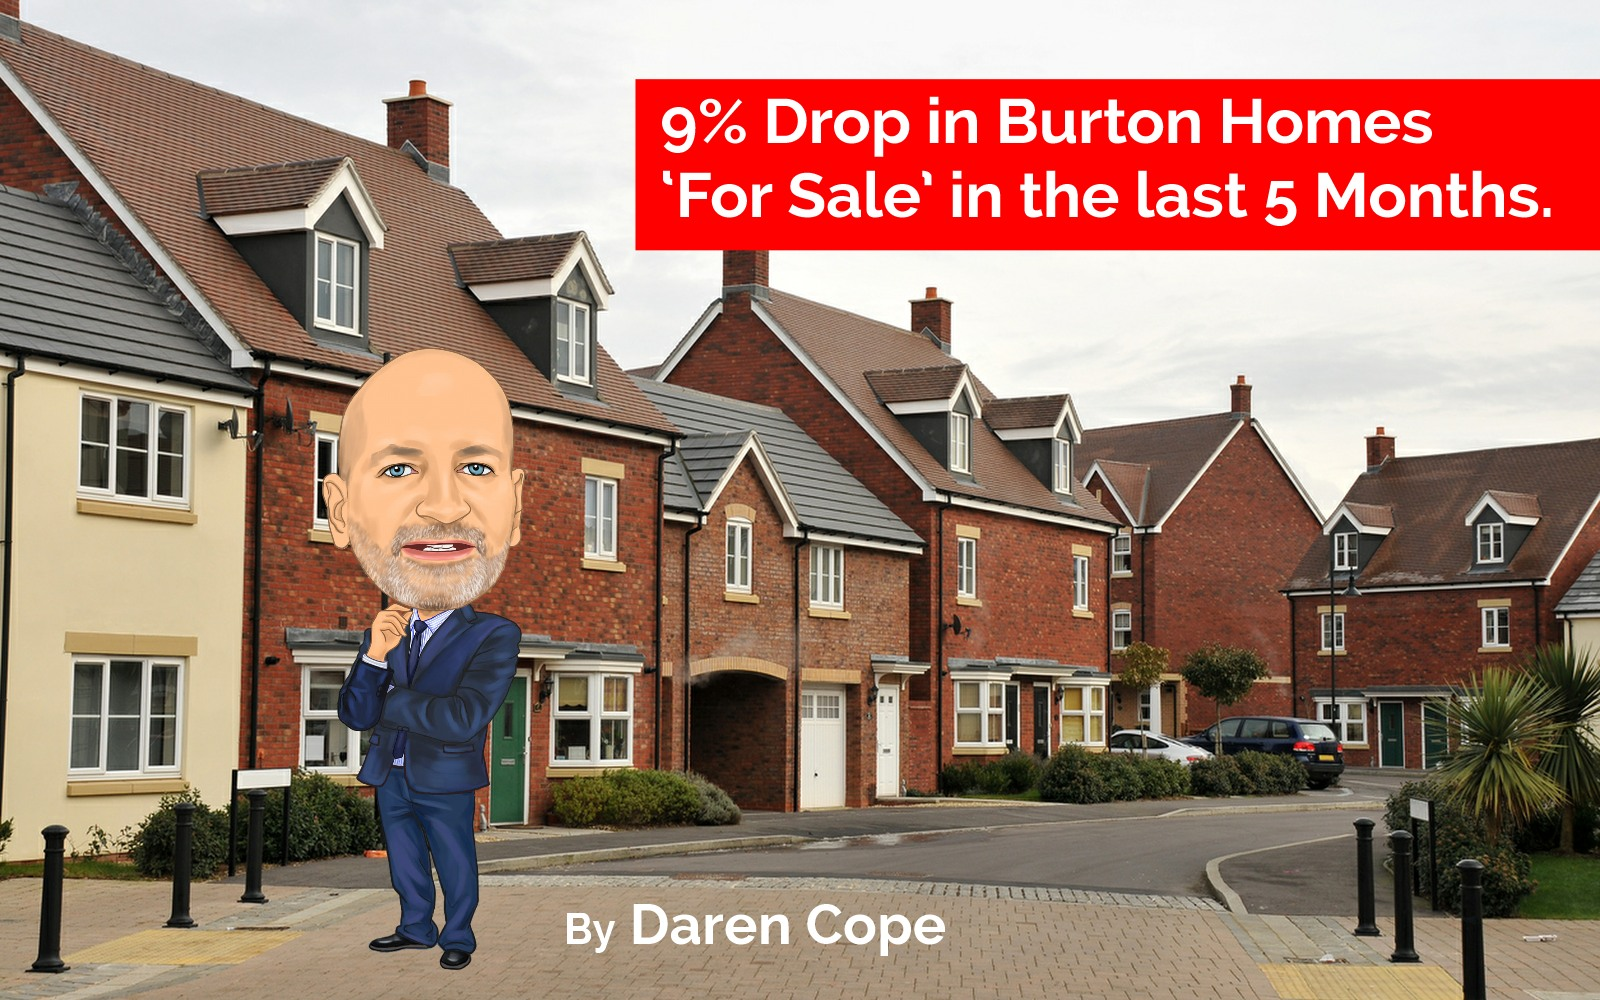 9% drop in Burton Homes 'For Sale' in Last 5 Months